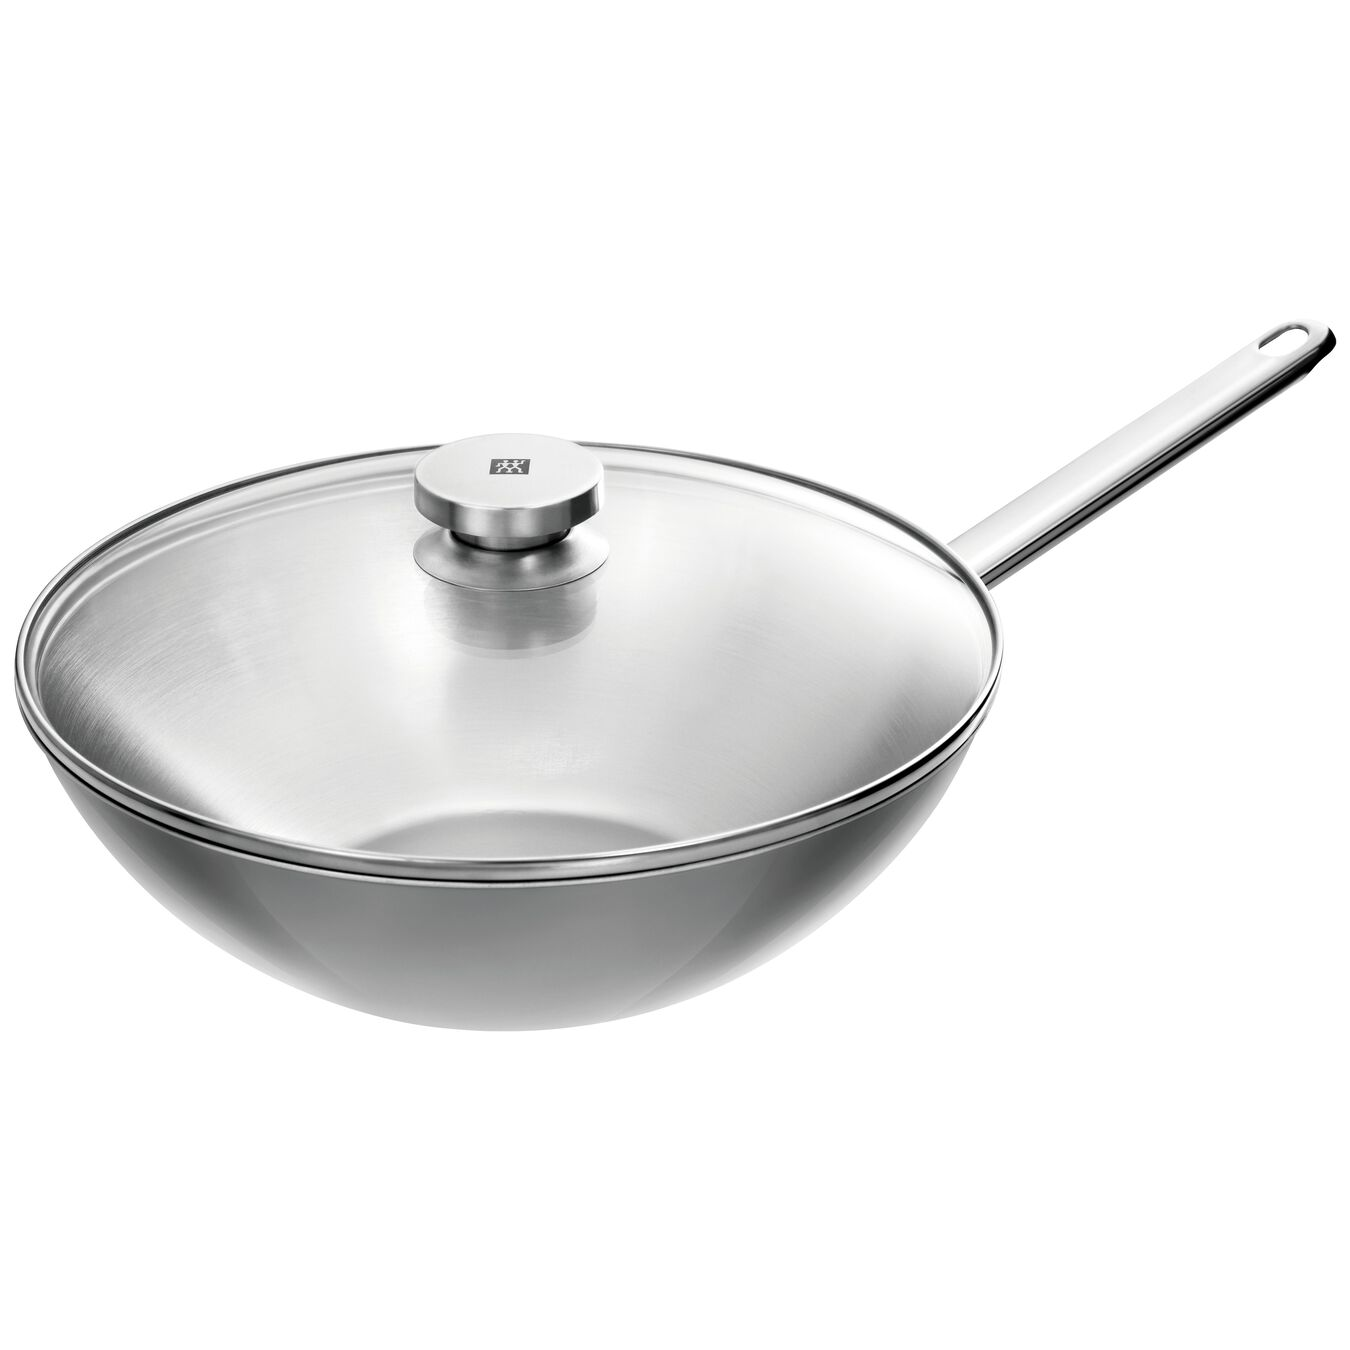 30 cm 18/10 Stainless Steel Wok,,large 1